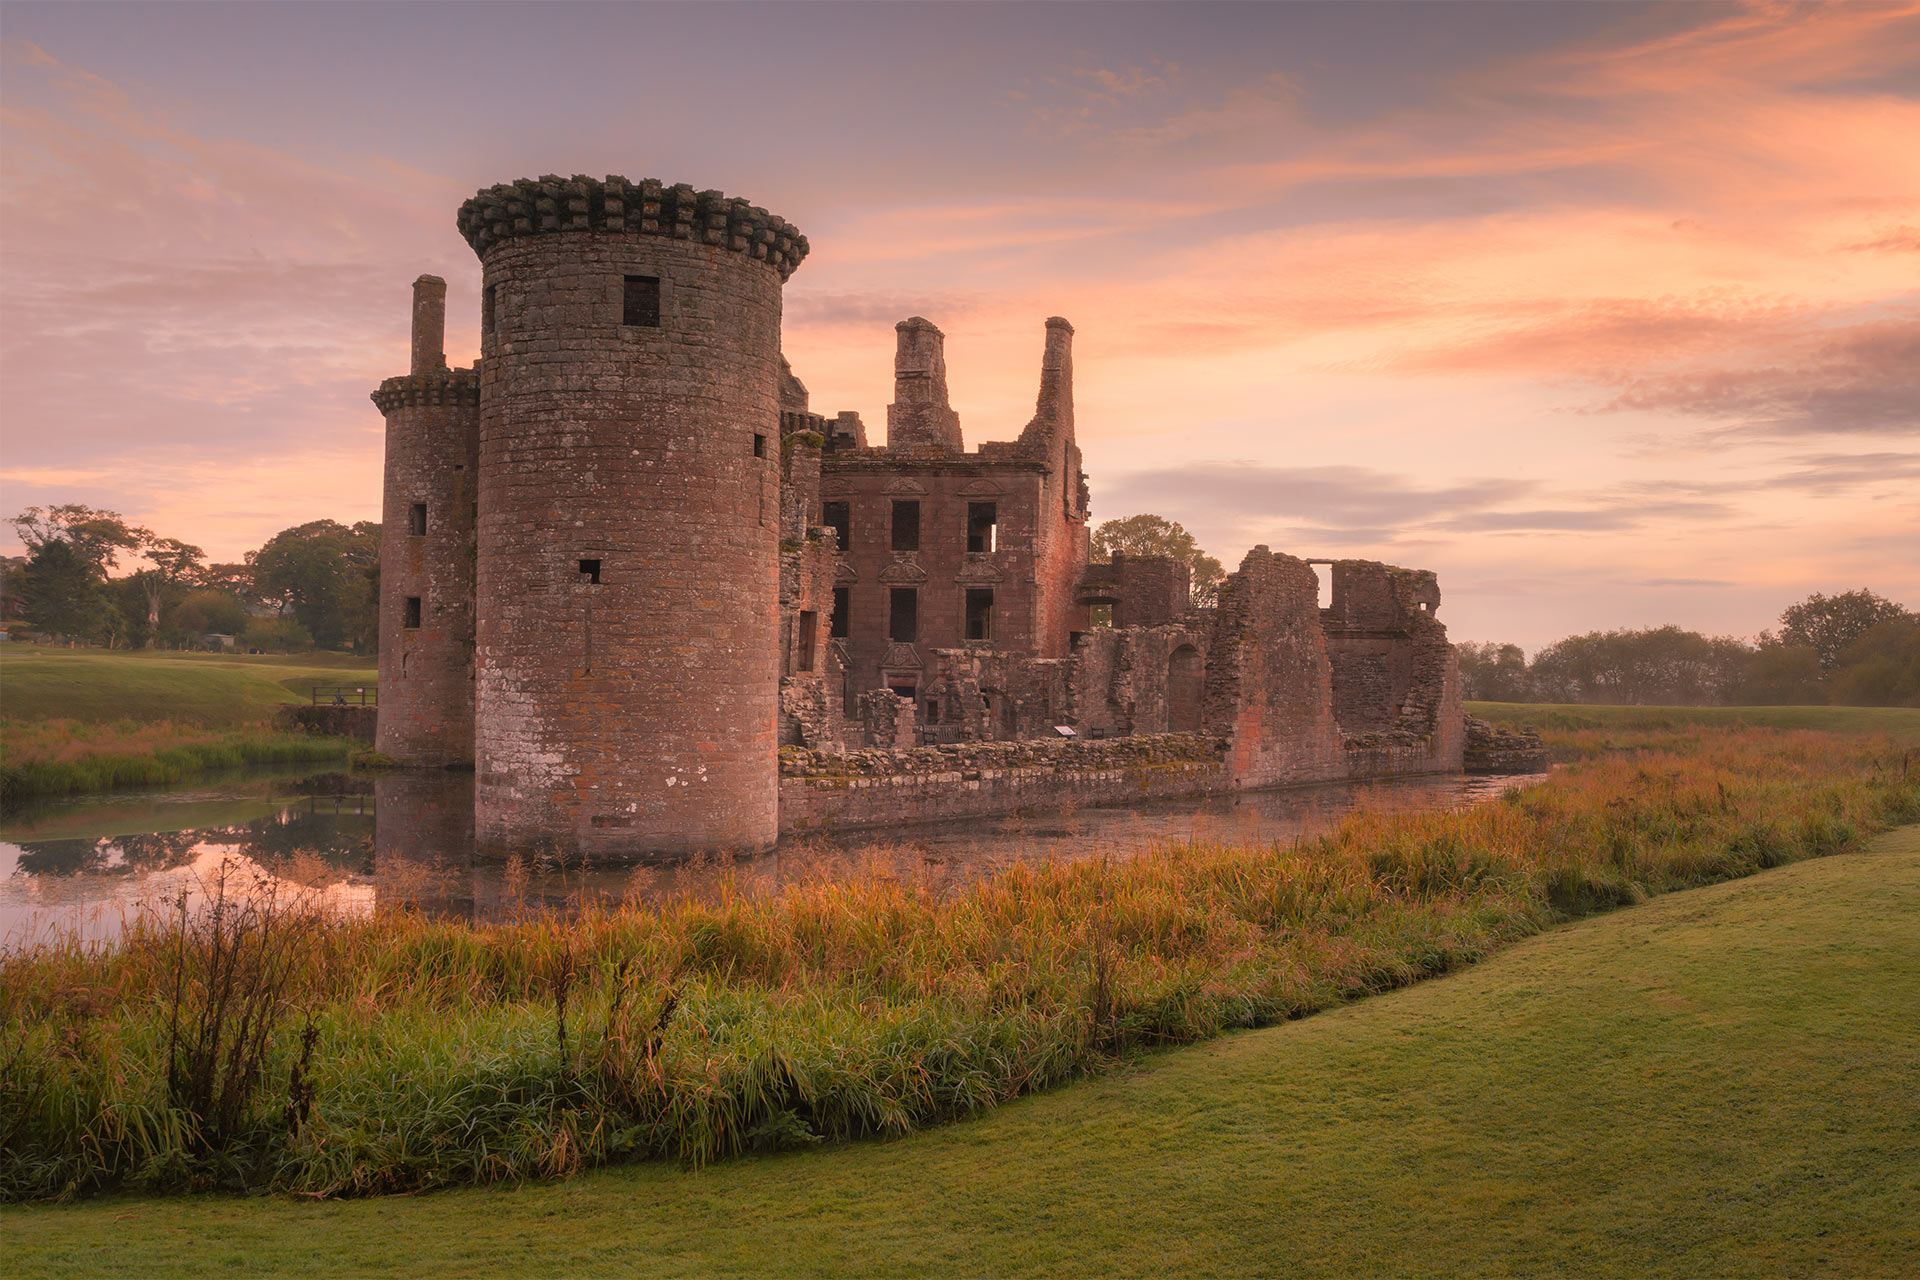 Castillo de Caerlaverock, Dumfries y Galloway